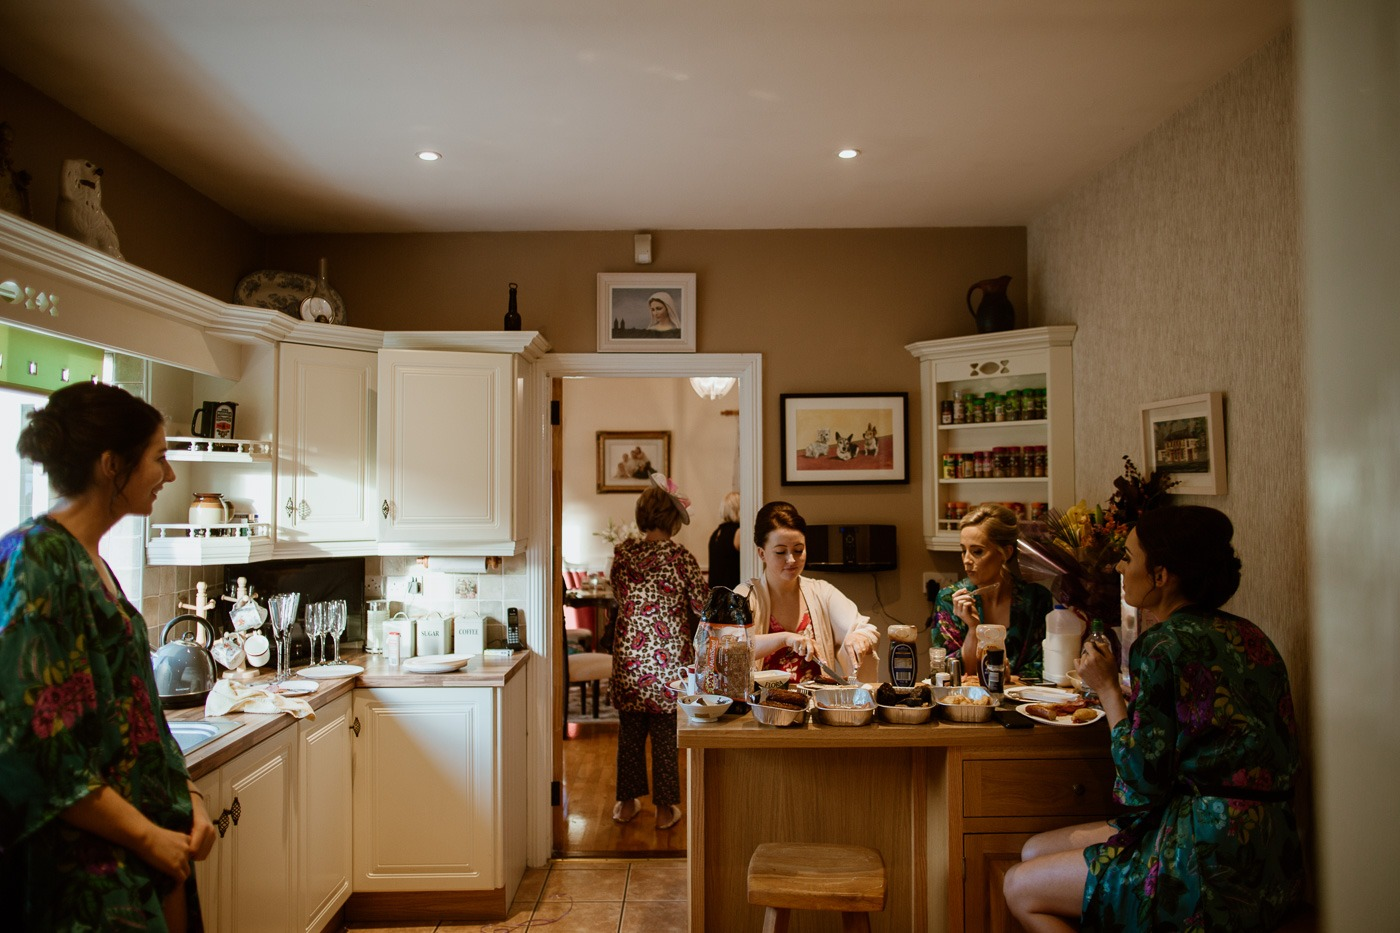 A group of people in a kitchen